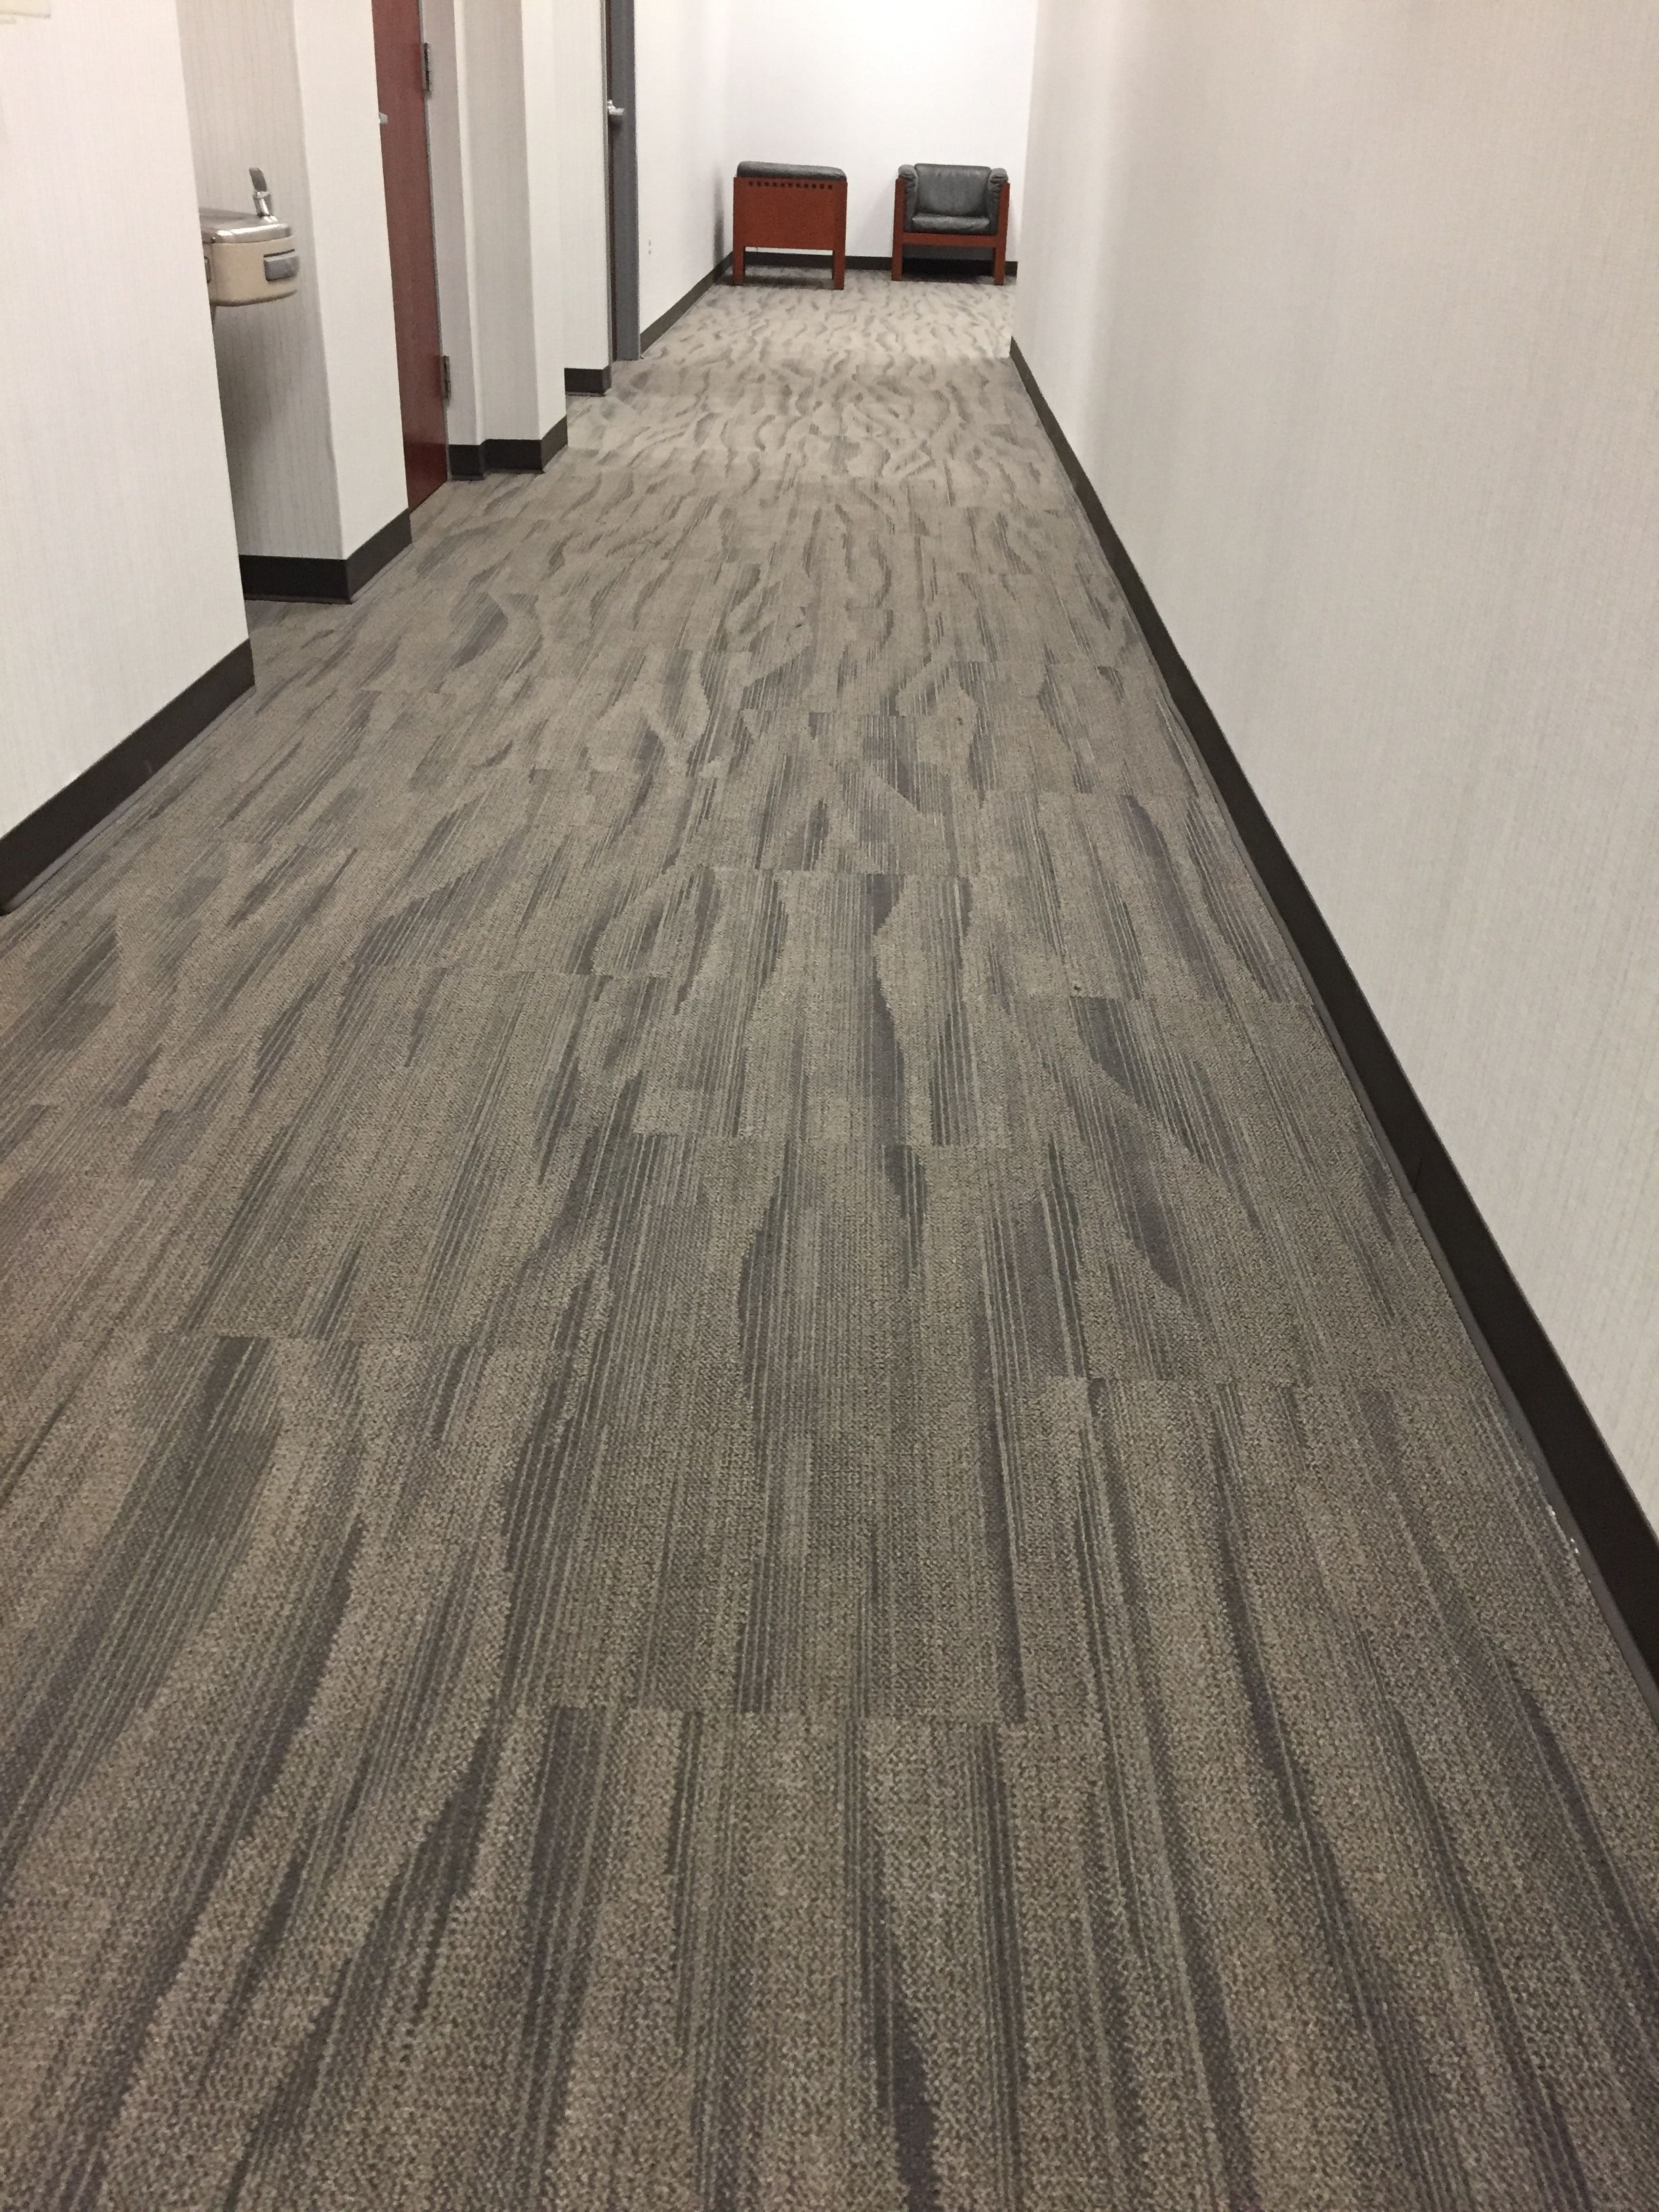 Carpet Tile By Ef Contract Style Low Tide 18x36 Carpet Tiles Healthcare Design Engineered Flooring